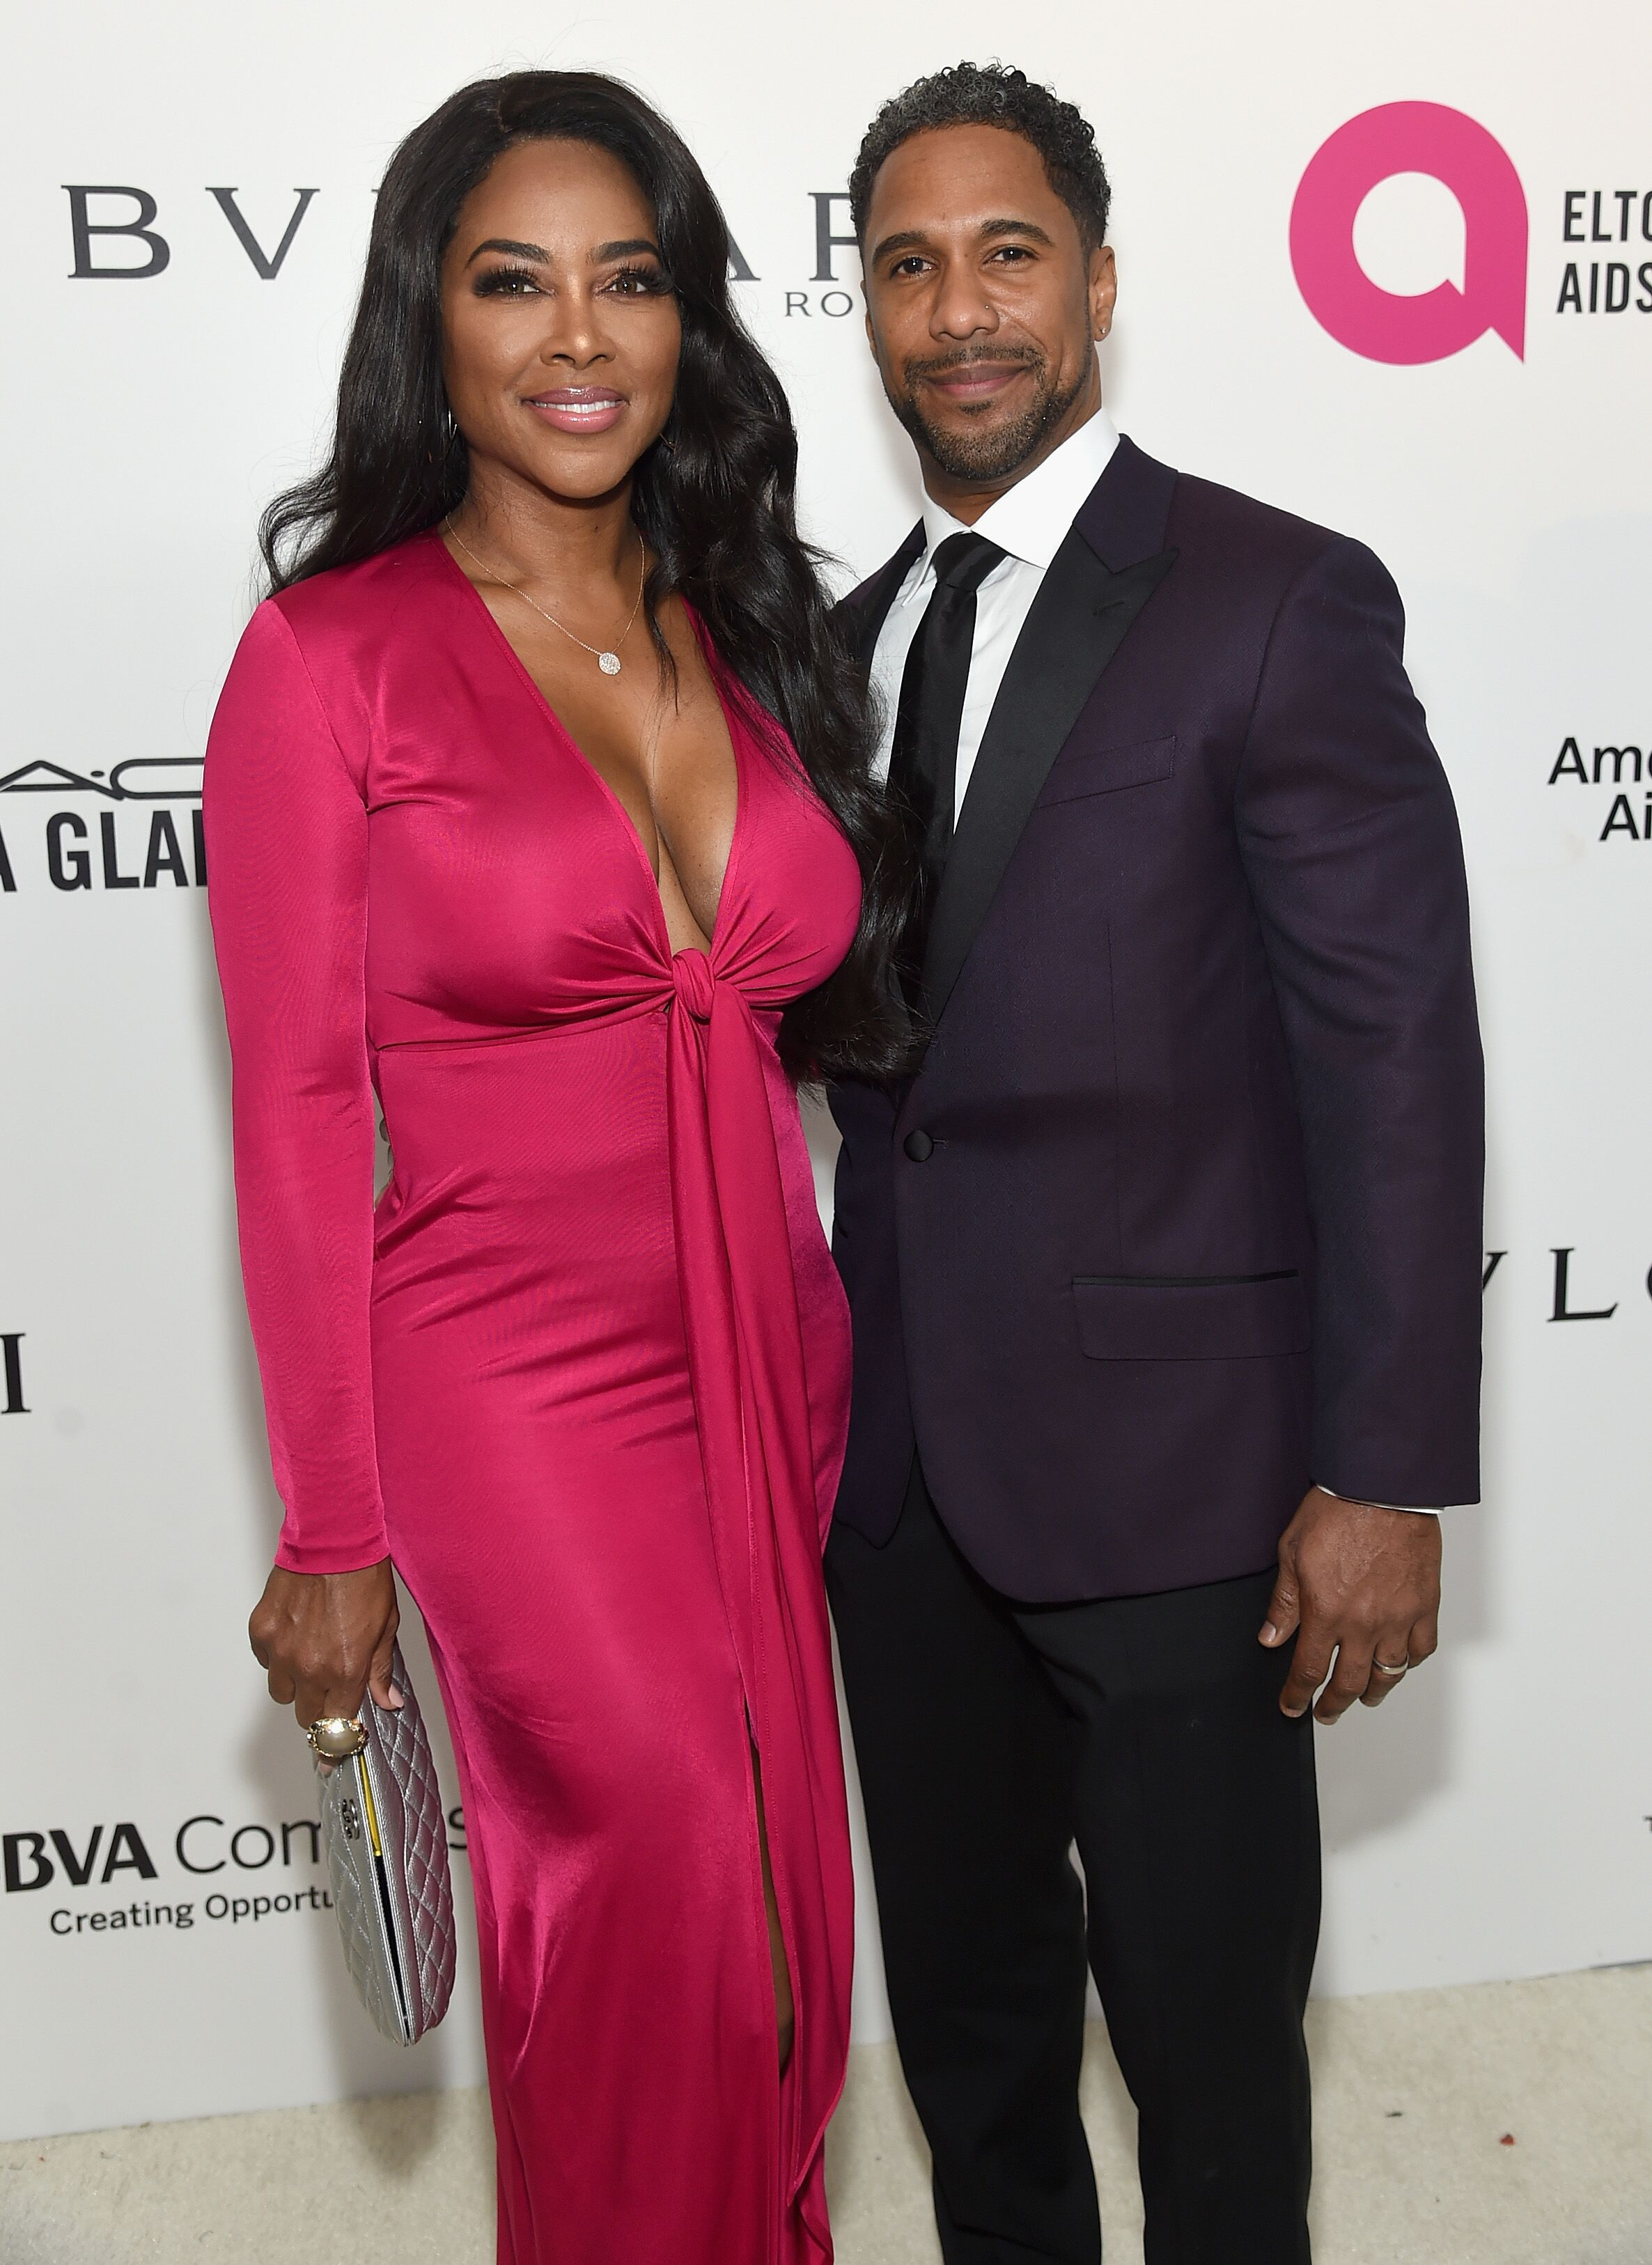 Kenya Moore and Marc Daly at a formal event | Source: Getty Images/GlobalImagesUkraine